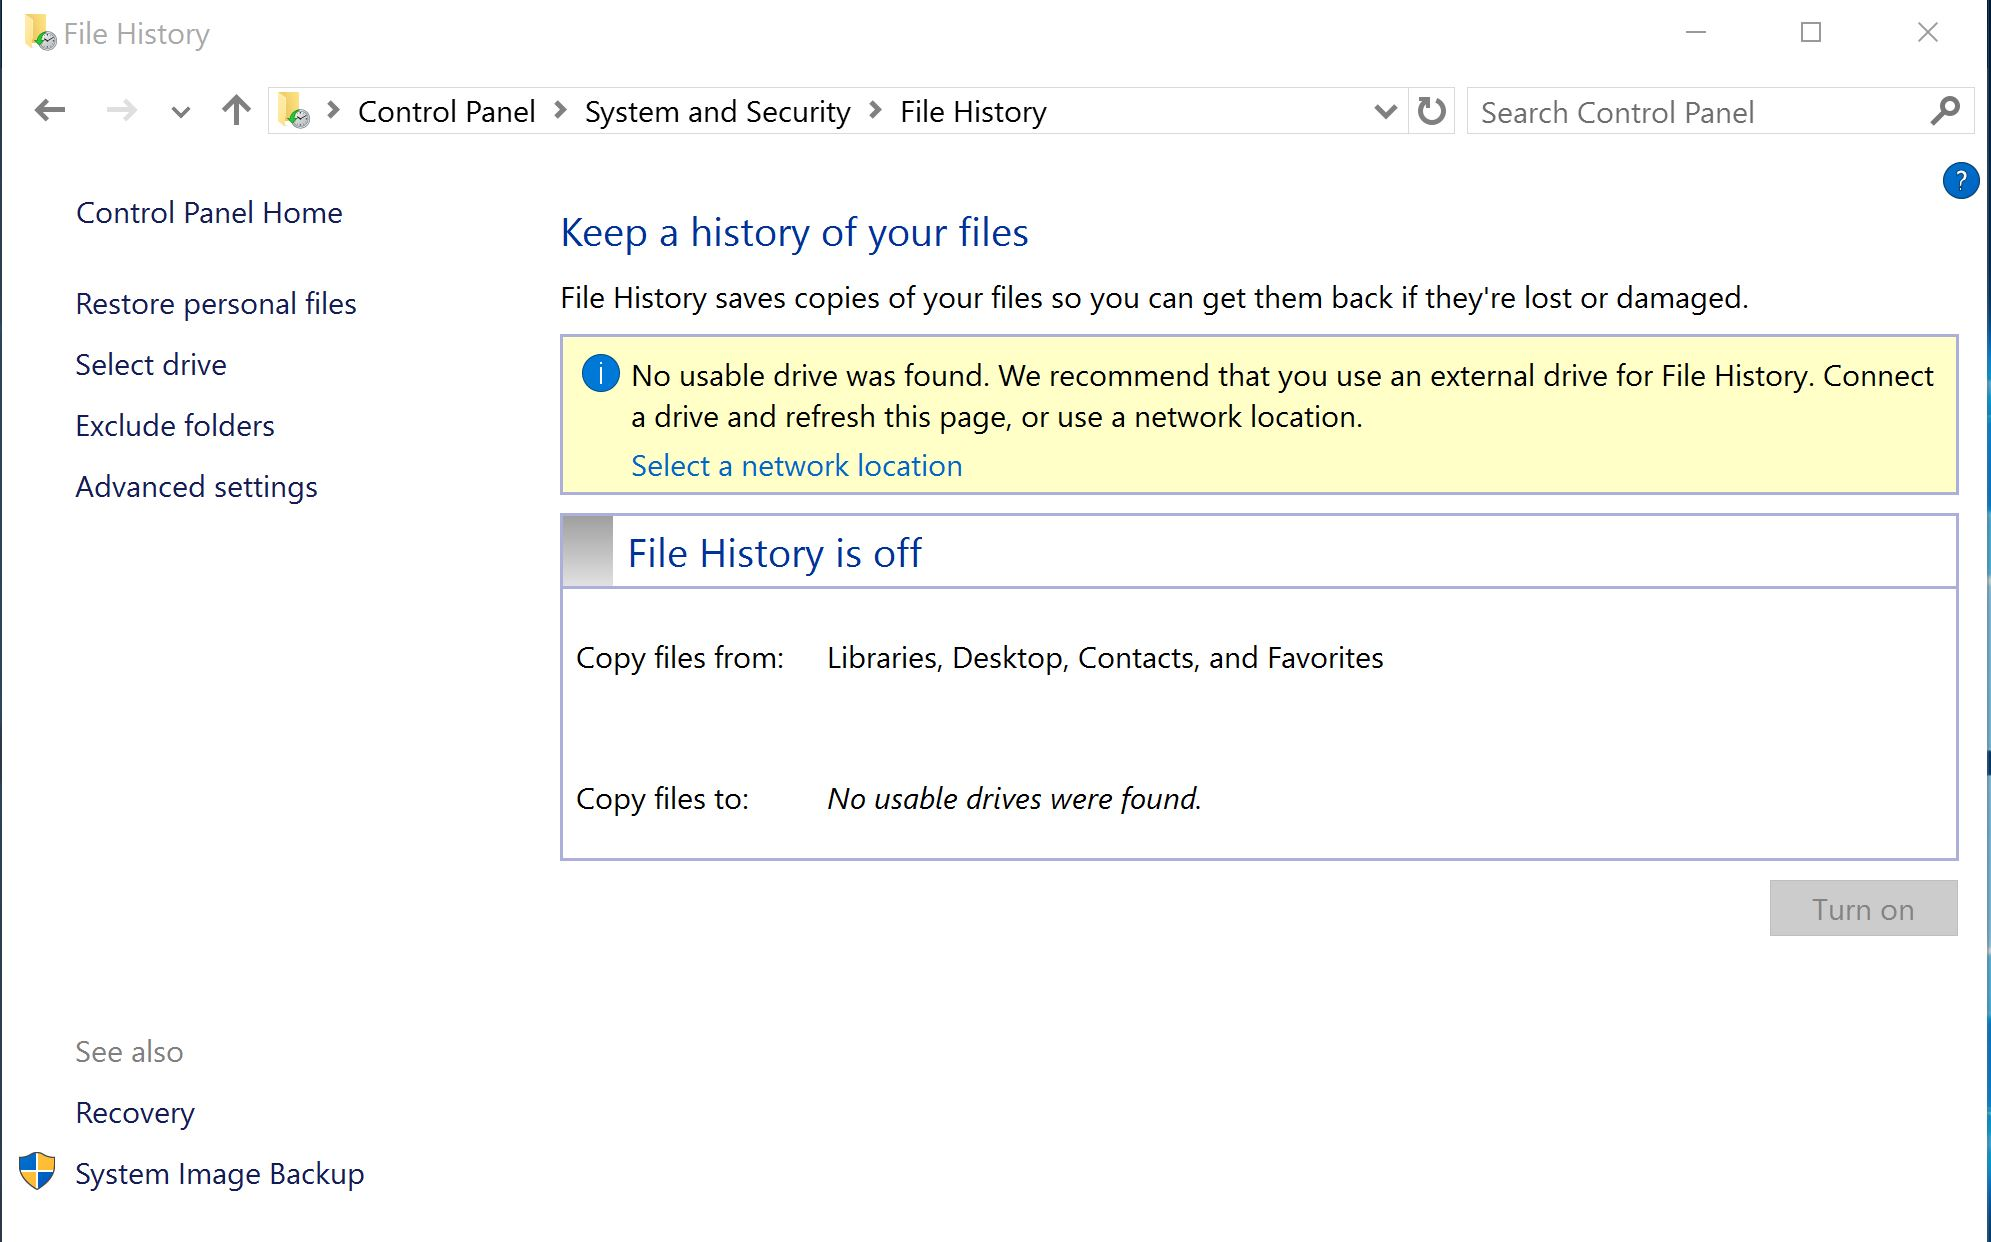 How to backup and restore your files in Windows 10 - MSPoweruser